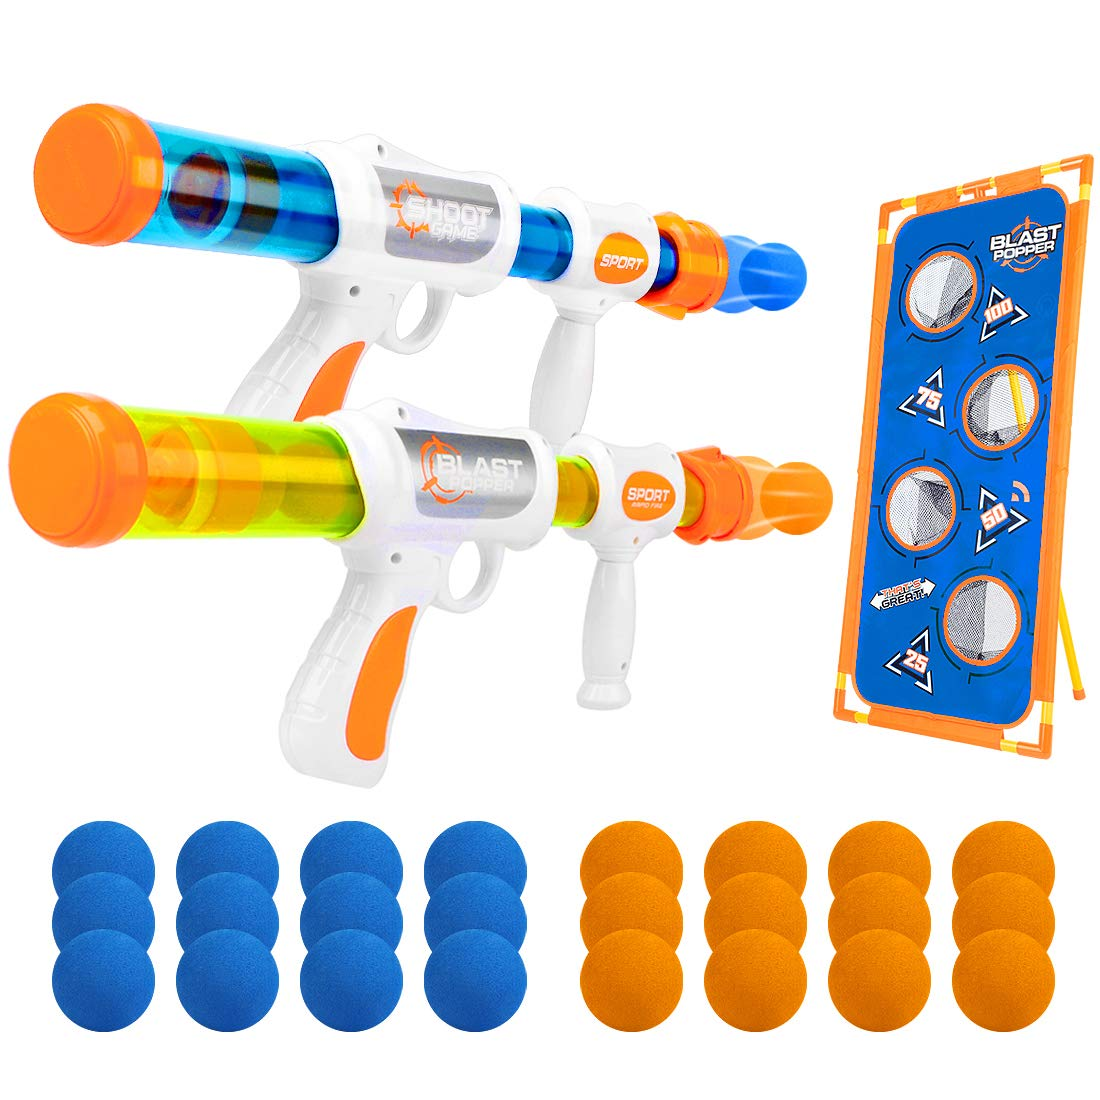 X TOYZ Shooting Game Toy for Kids Foam Ball Popper Blaster Air Toy Guns 2 Player with 24 Foam Balls and Shooting Target, Indoor Activity Family Games, Gift for Age 6+ Kids - Compatible with Nerf Guns